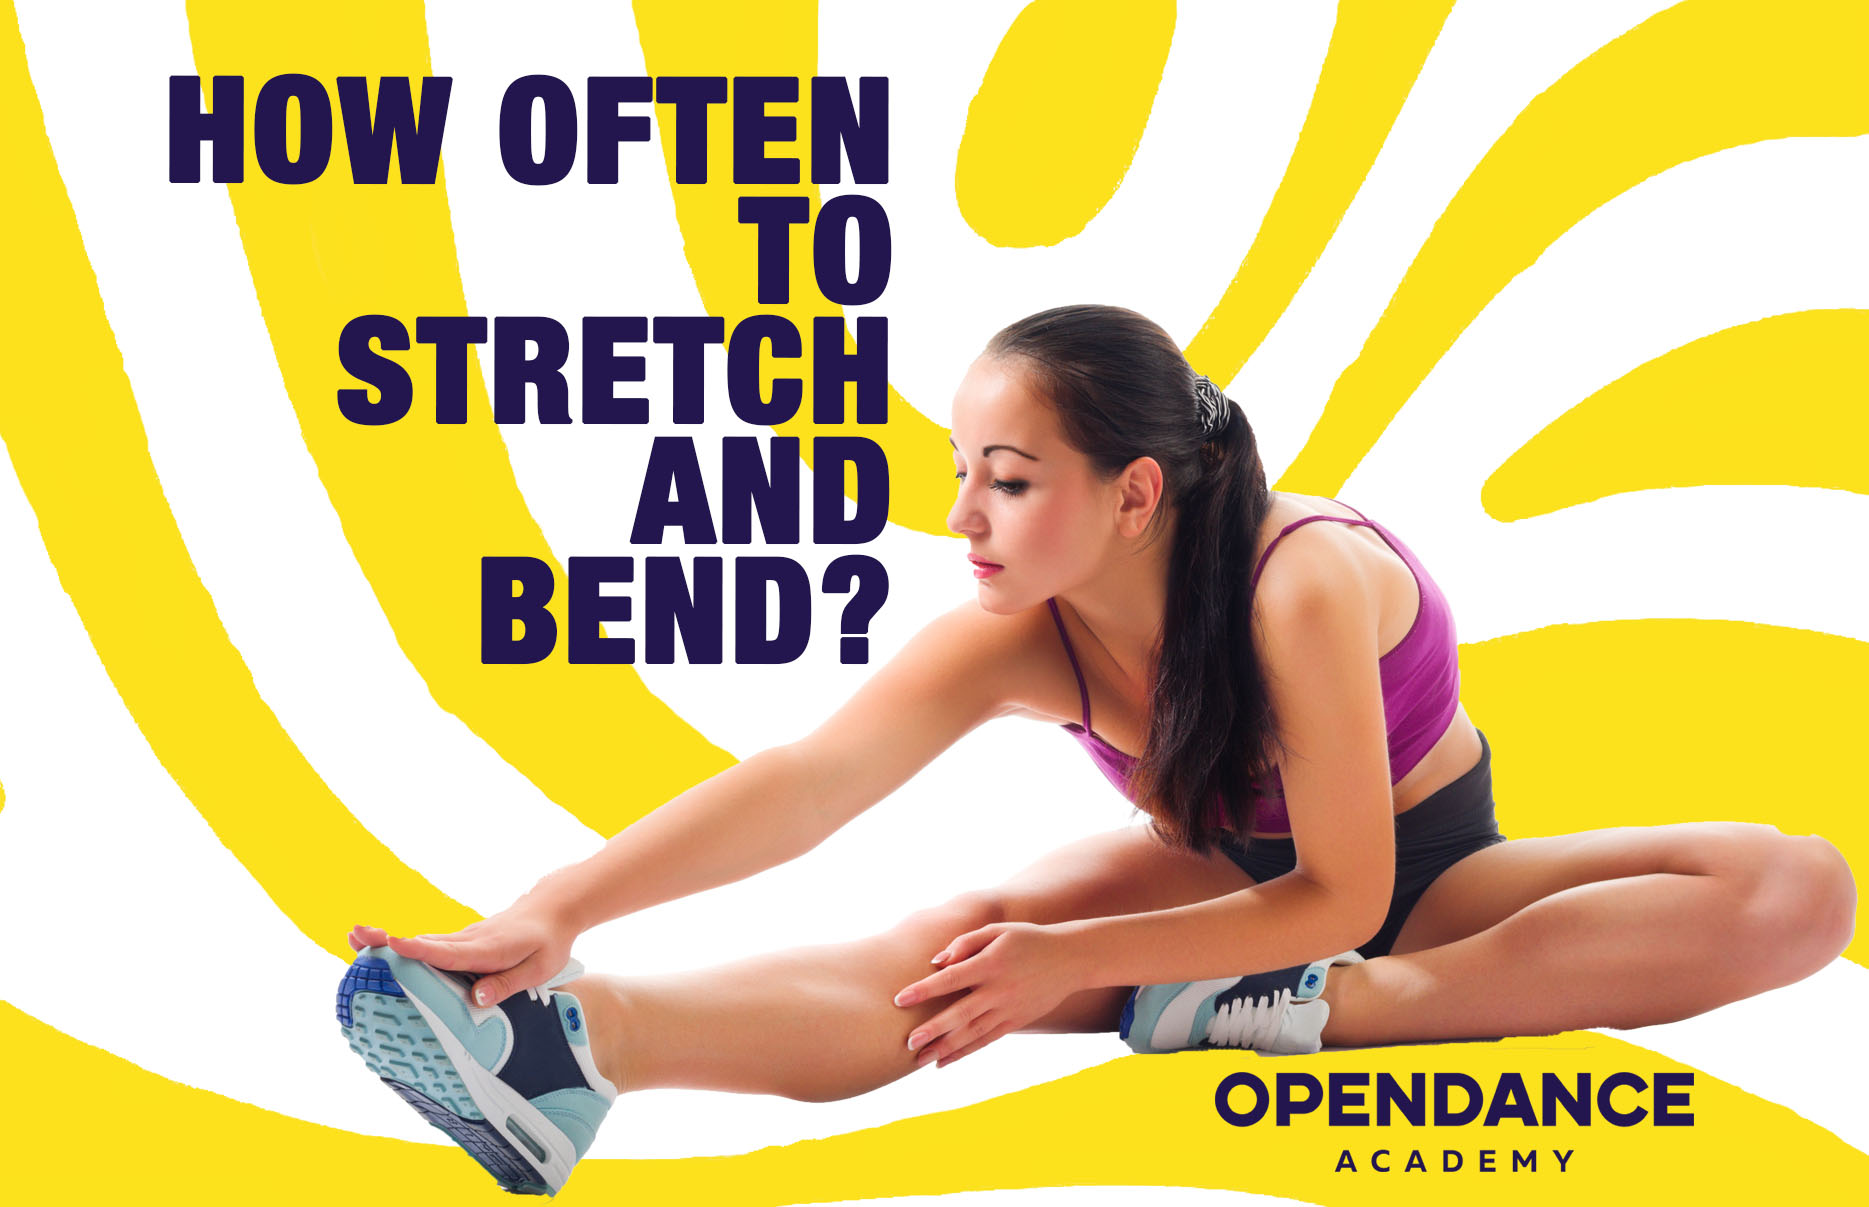 How Often To Stretch And Bend?